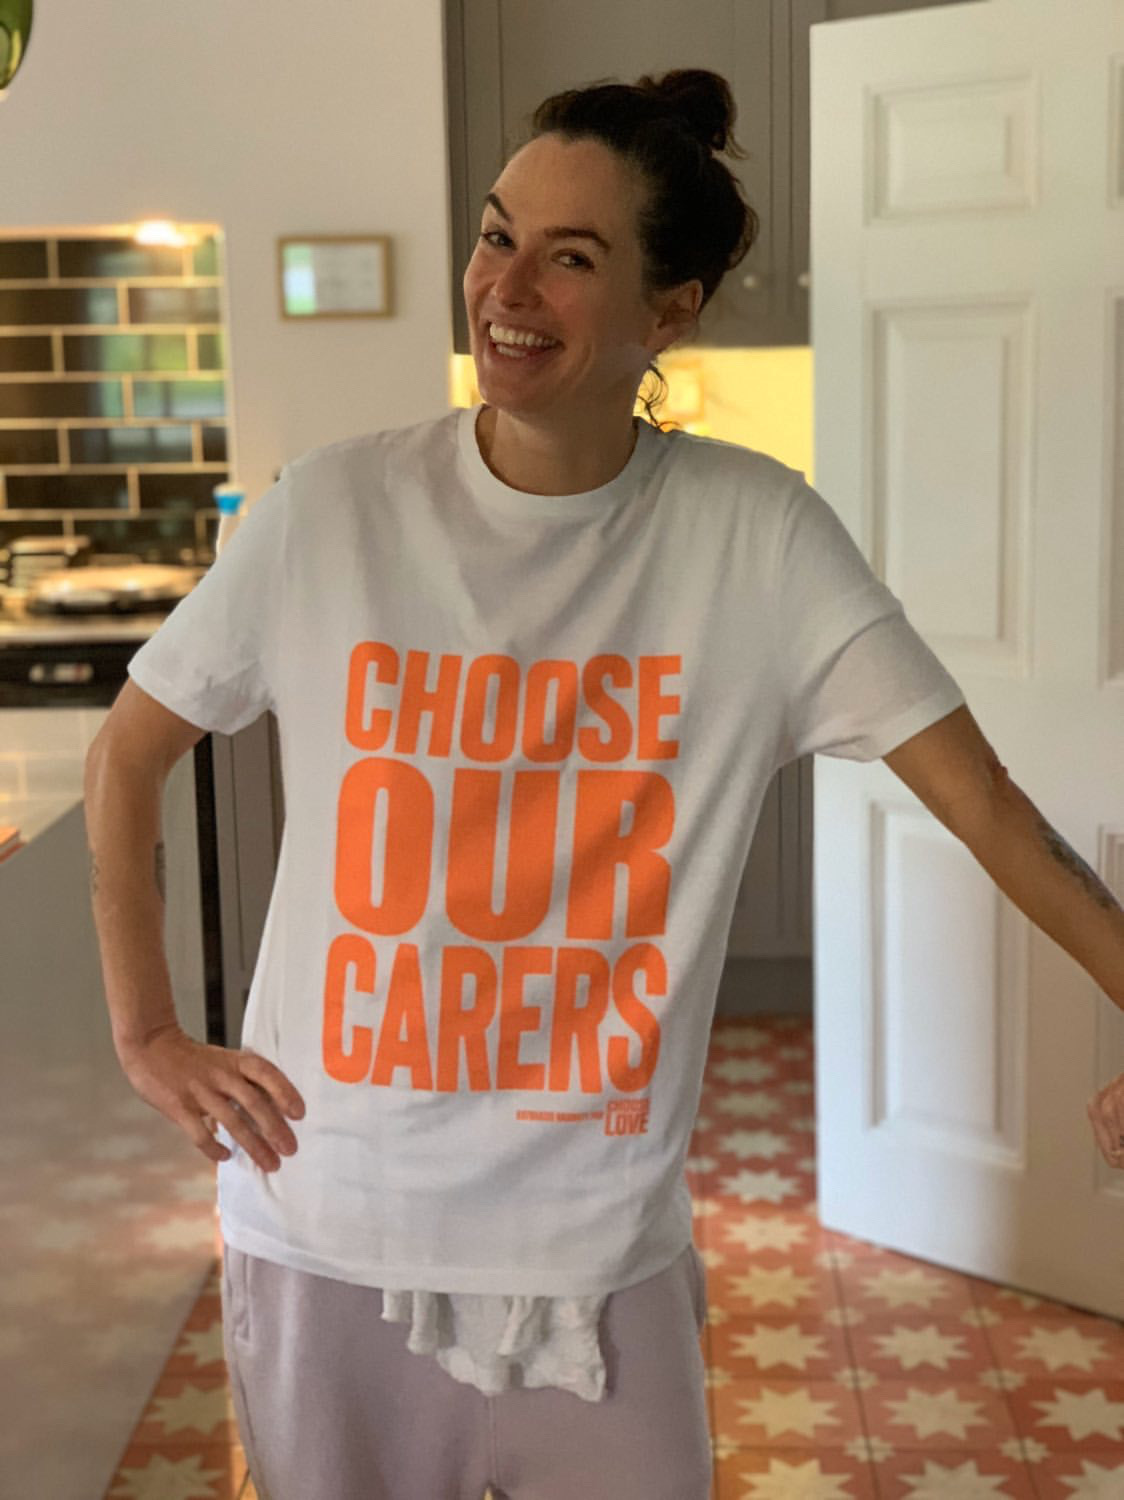 Choose Our Carers - Lena Heady